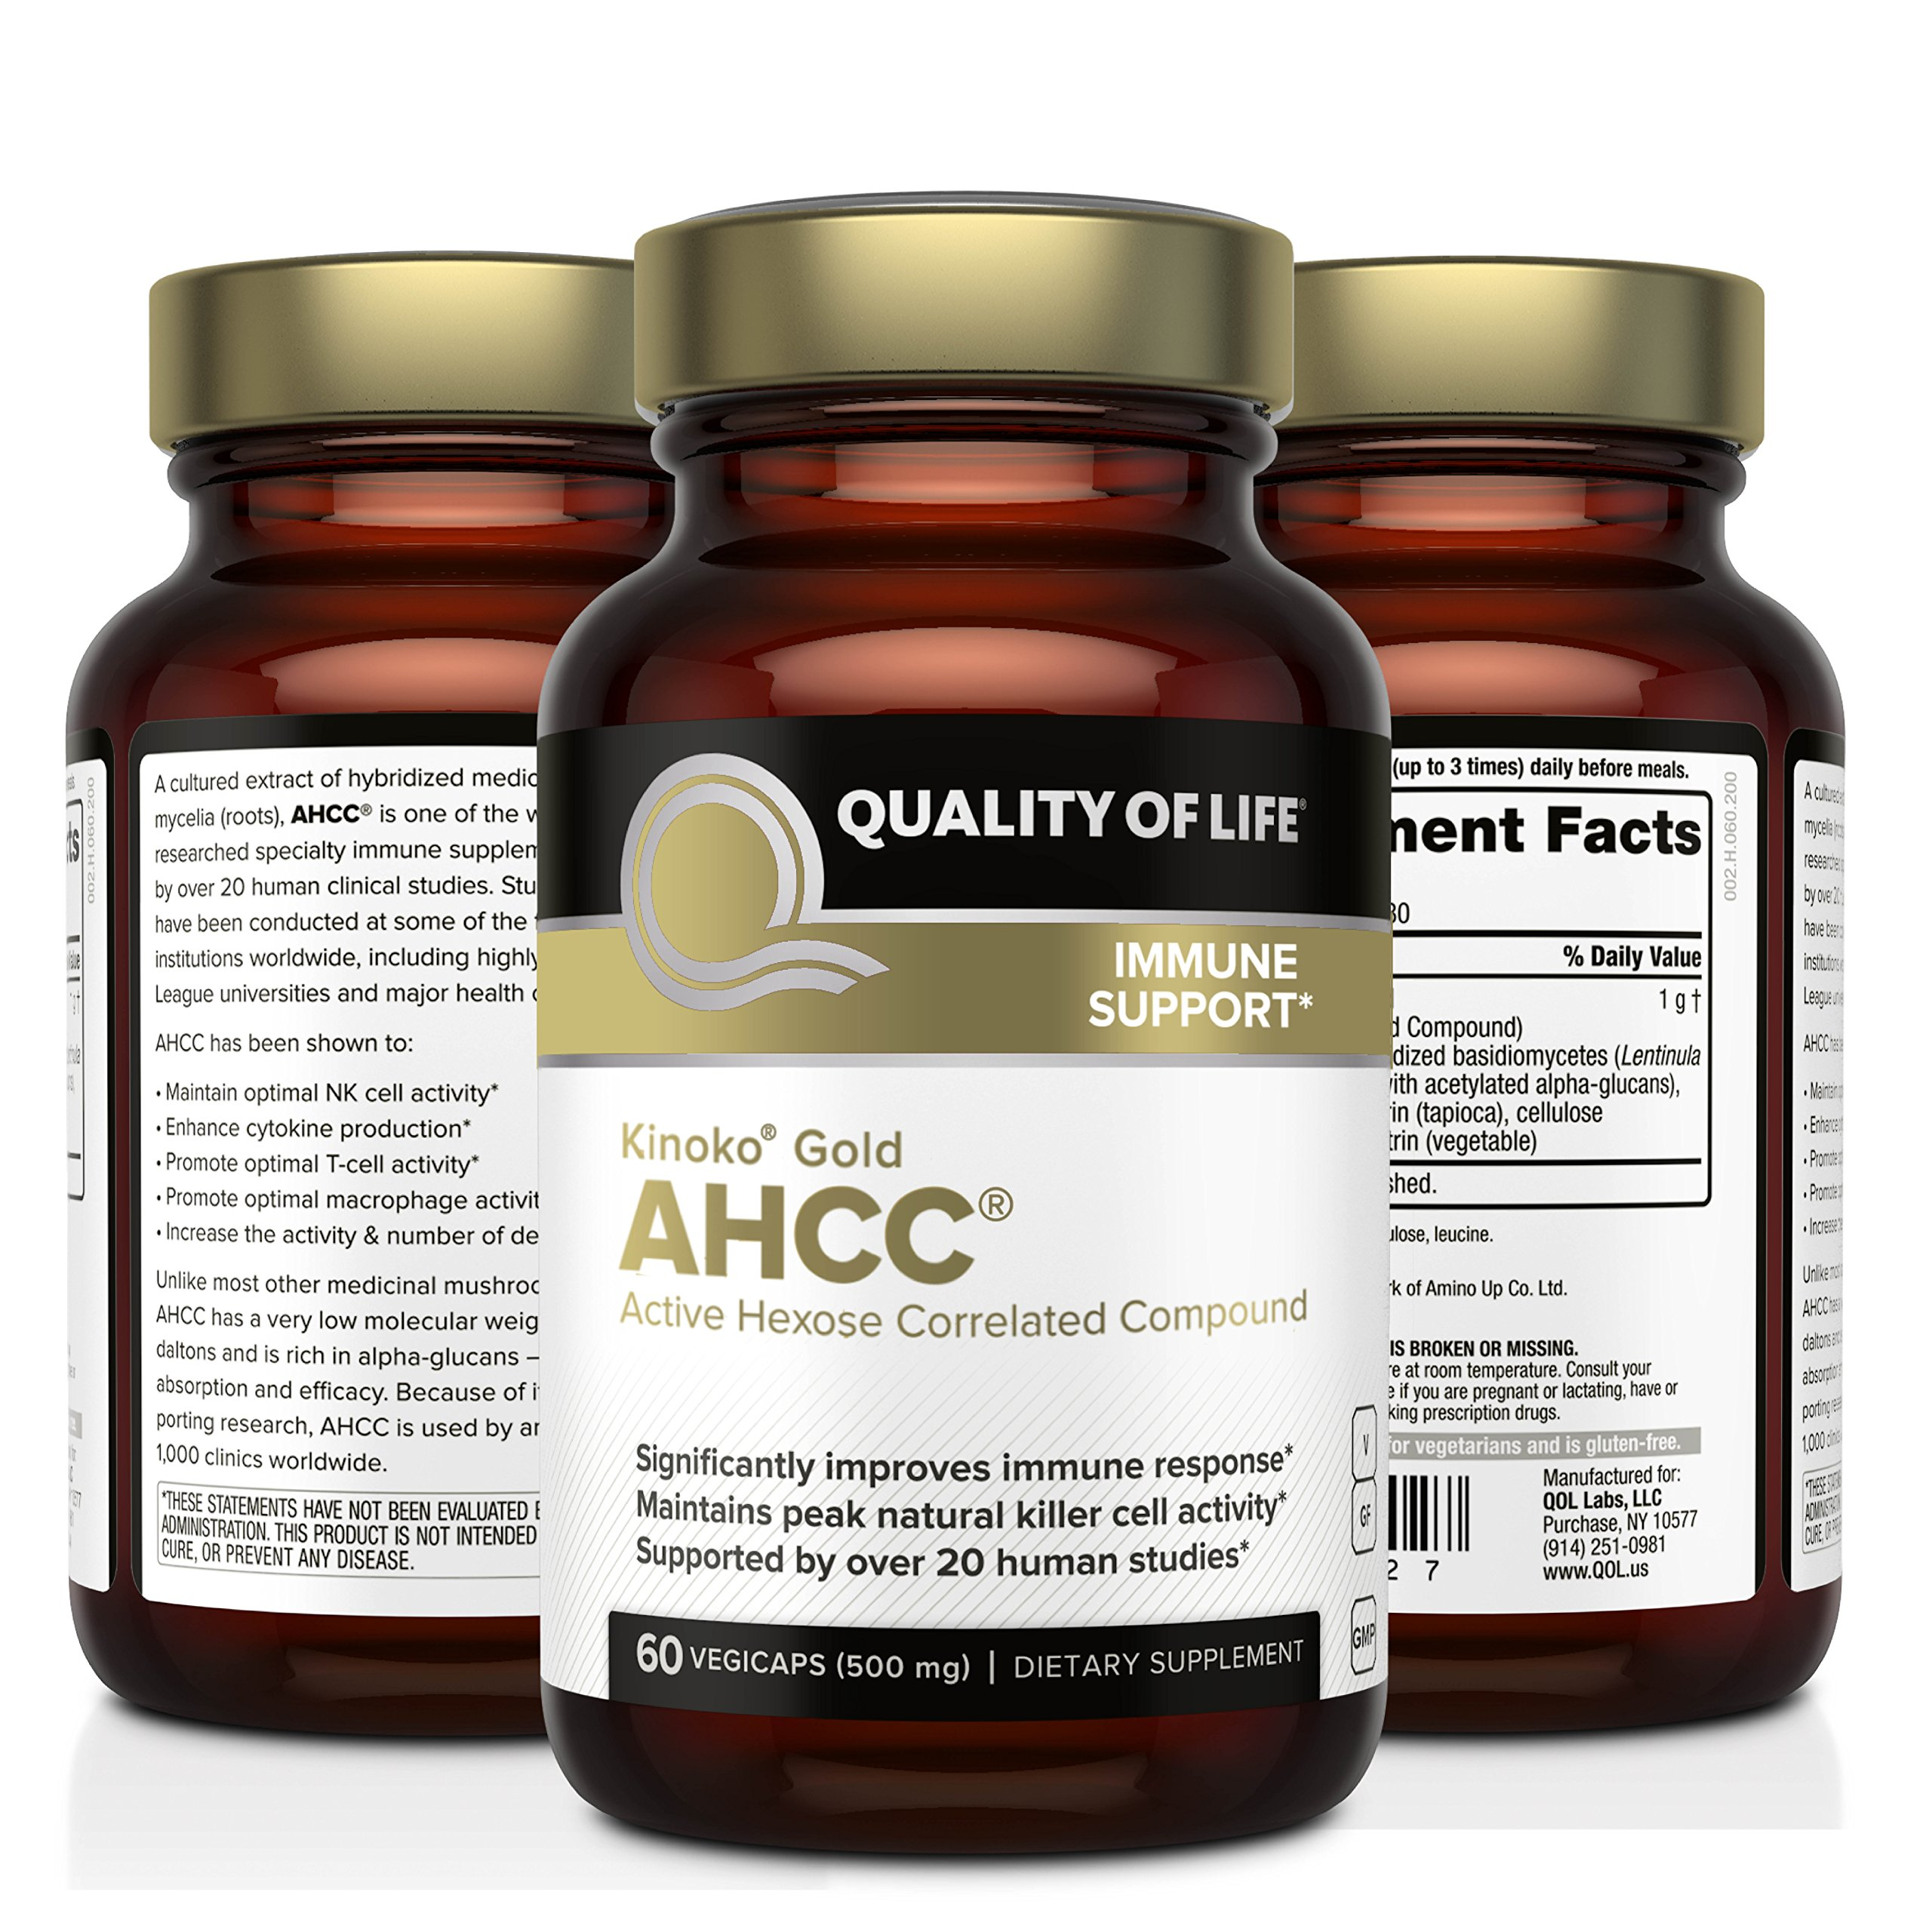 Premium Kinoko Gold AHCC Supplement-500mg of AHCC per Capsule-Supports Immune Health, Liver Function, Maintains Natural Killer Cell Activity & Enhances Cytokine Production-60 Veggie Capsules by Quality of Life (Image #4)